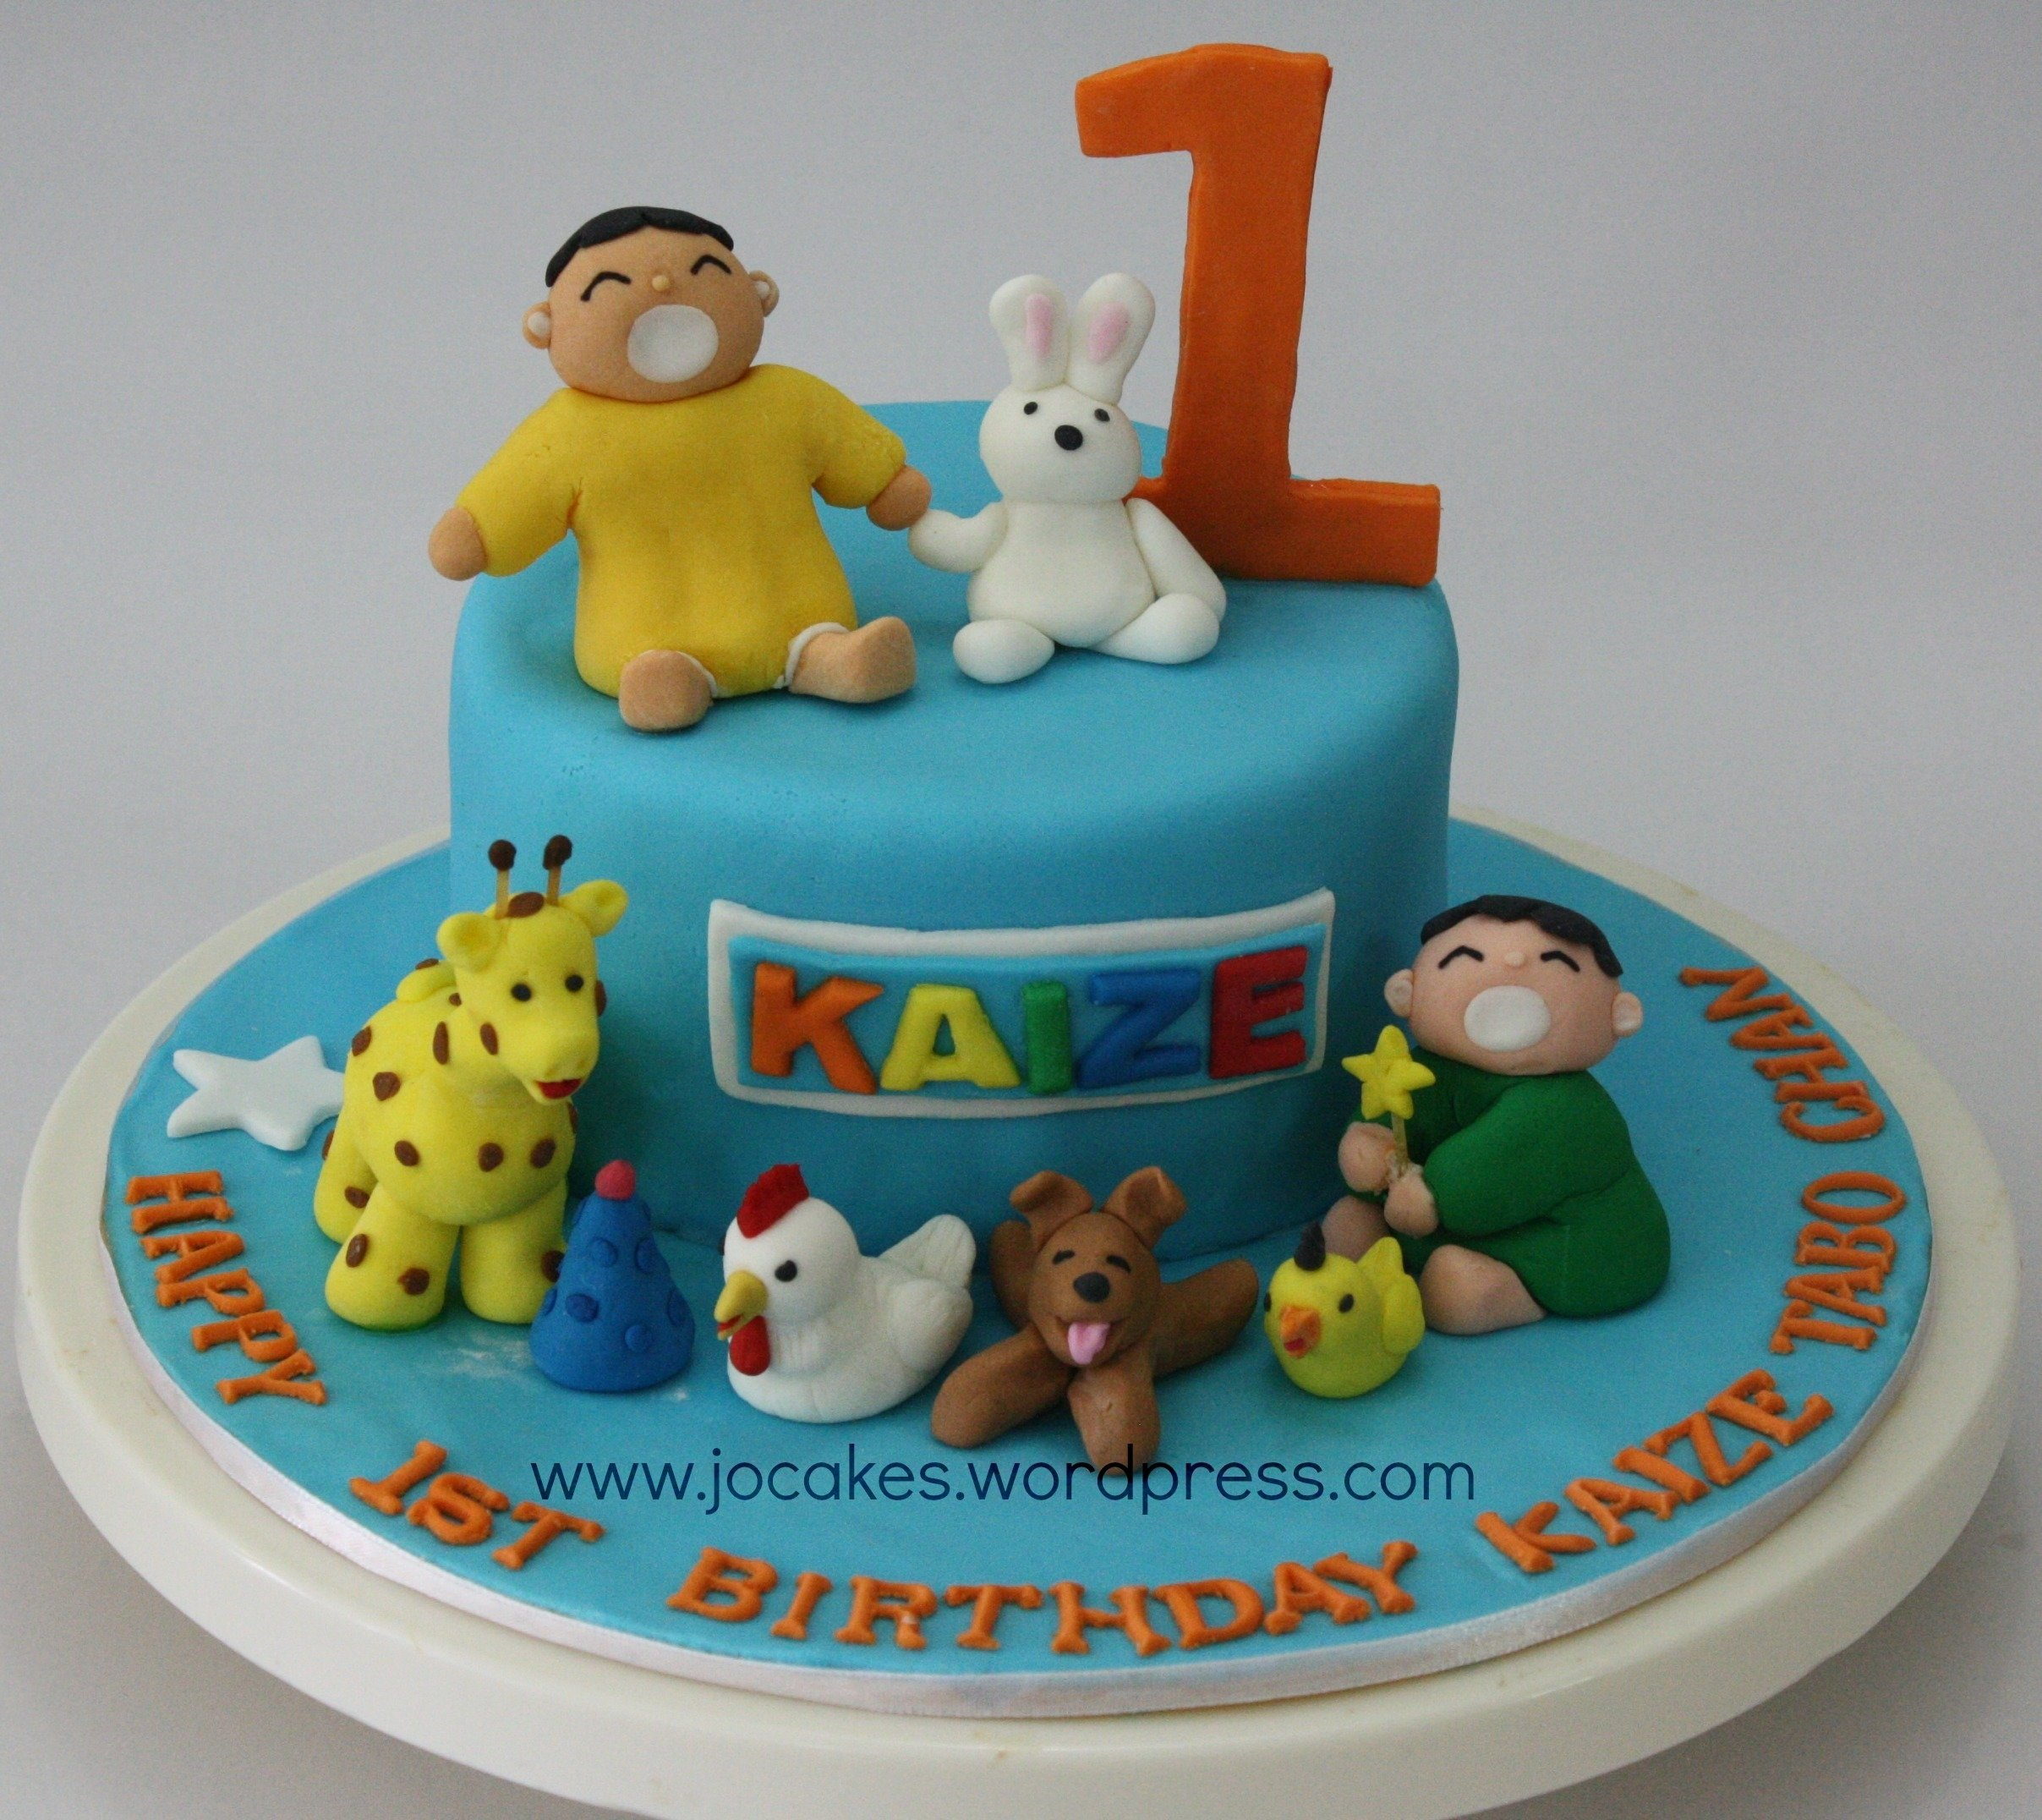 10 Famous 1 Year Old Birthday Cake Ideas 8 one year birthday cakes for boys photo 11 year old birthday cake